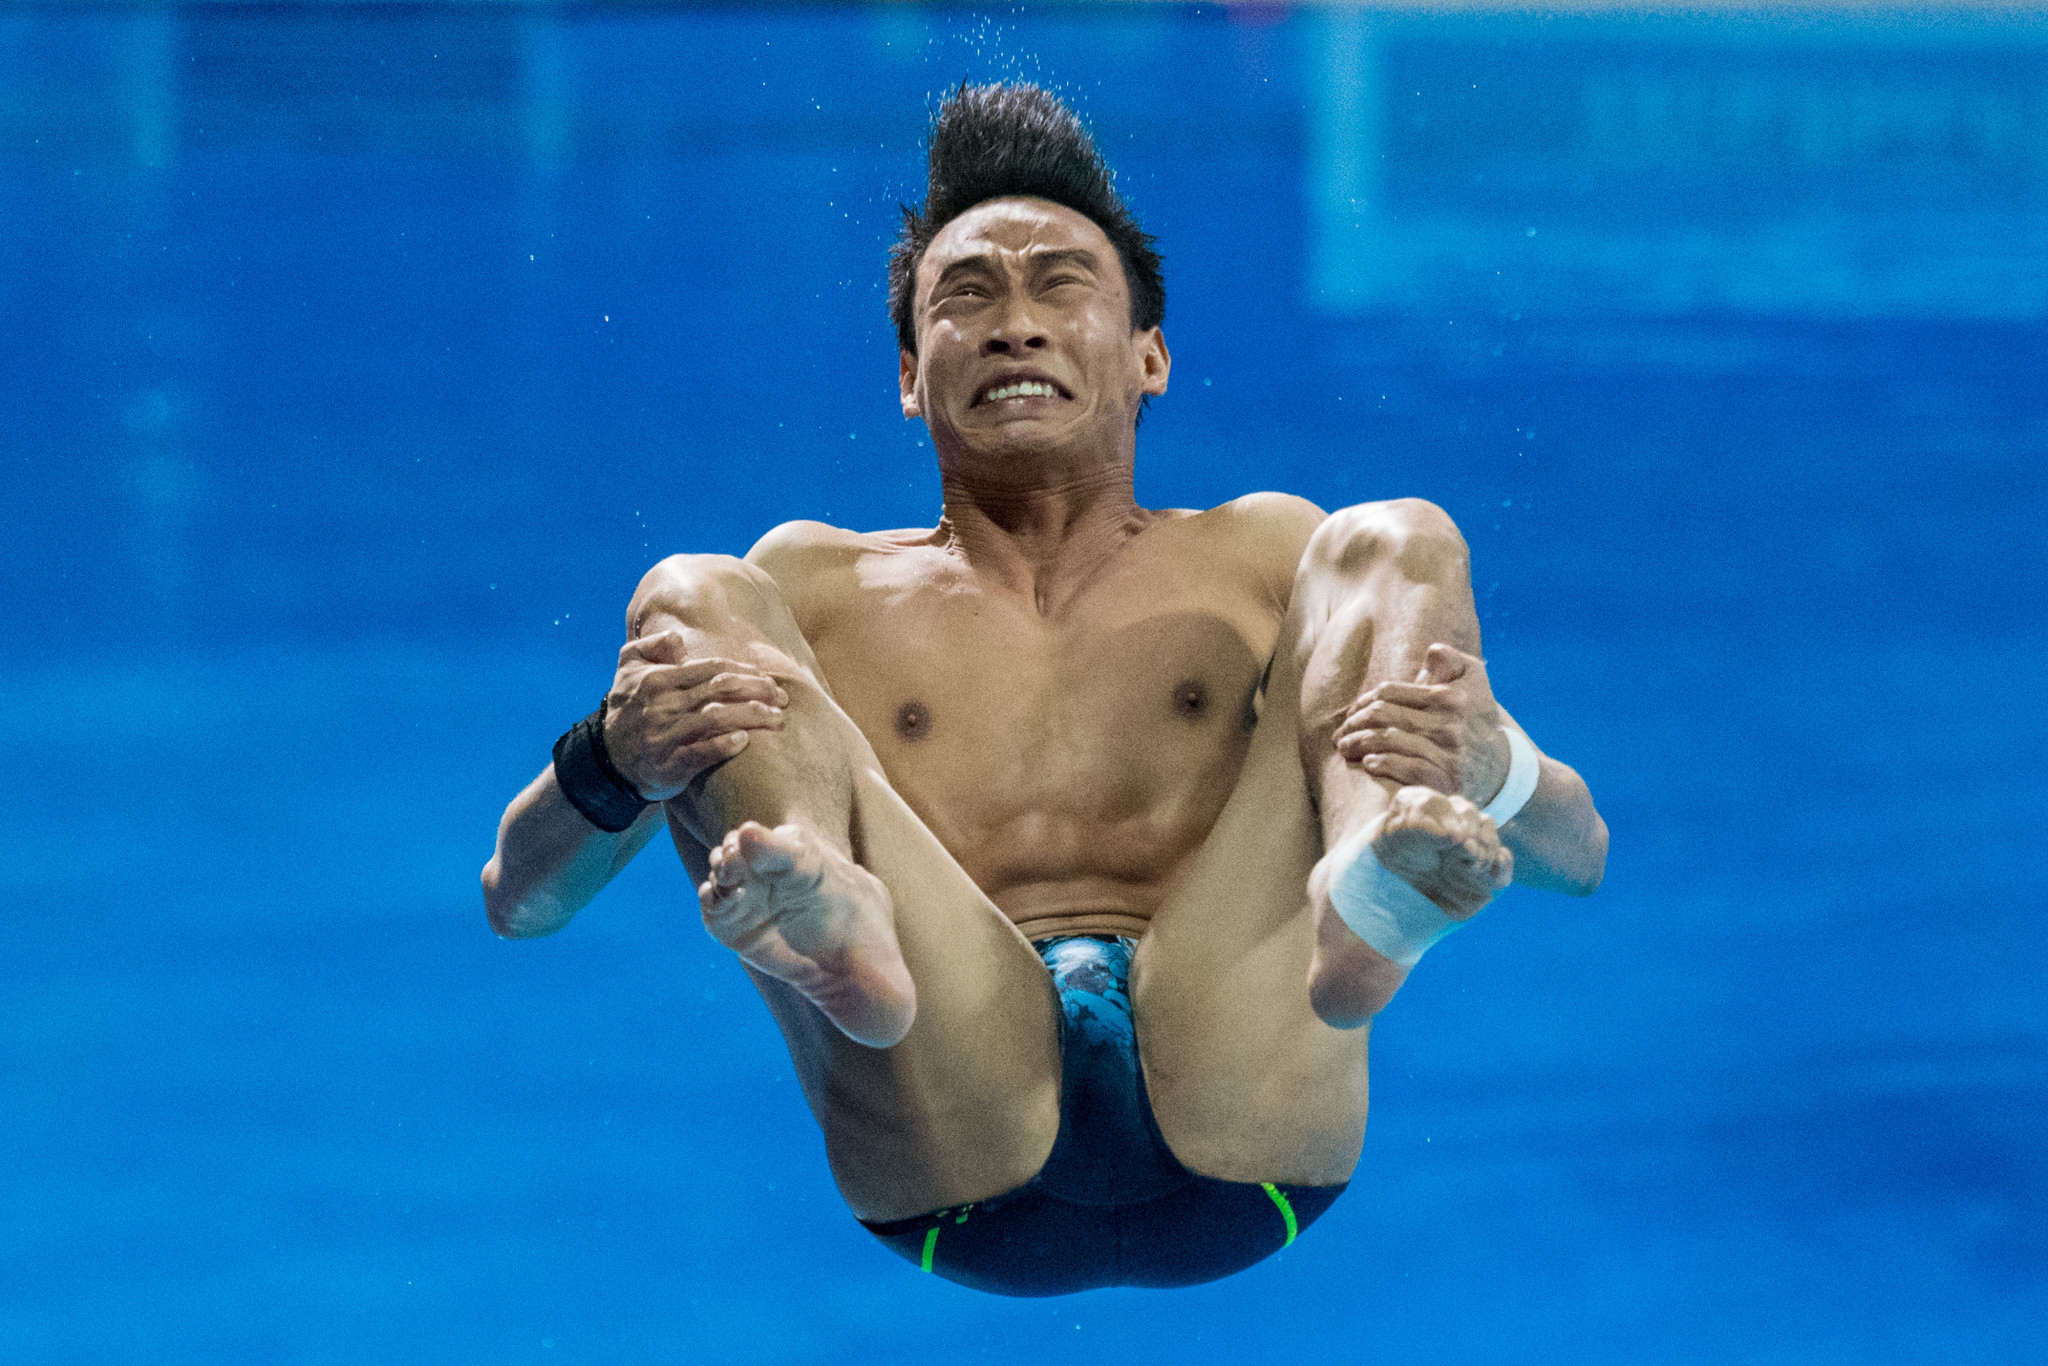 Malaysia clinch third gold medal at FINA Diving Grand Prix in Kuala Lumpur